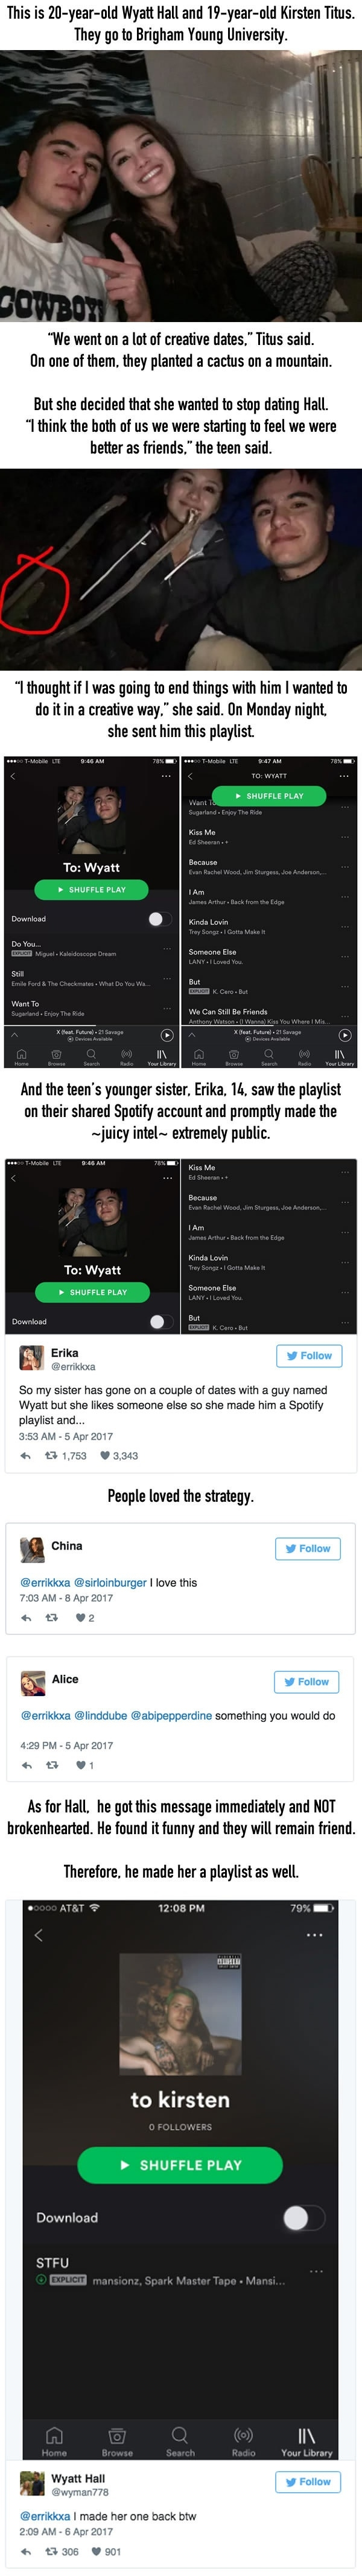 Teen made a spotify playlist to end things with a guy